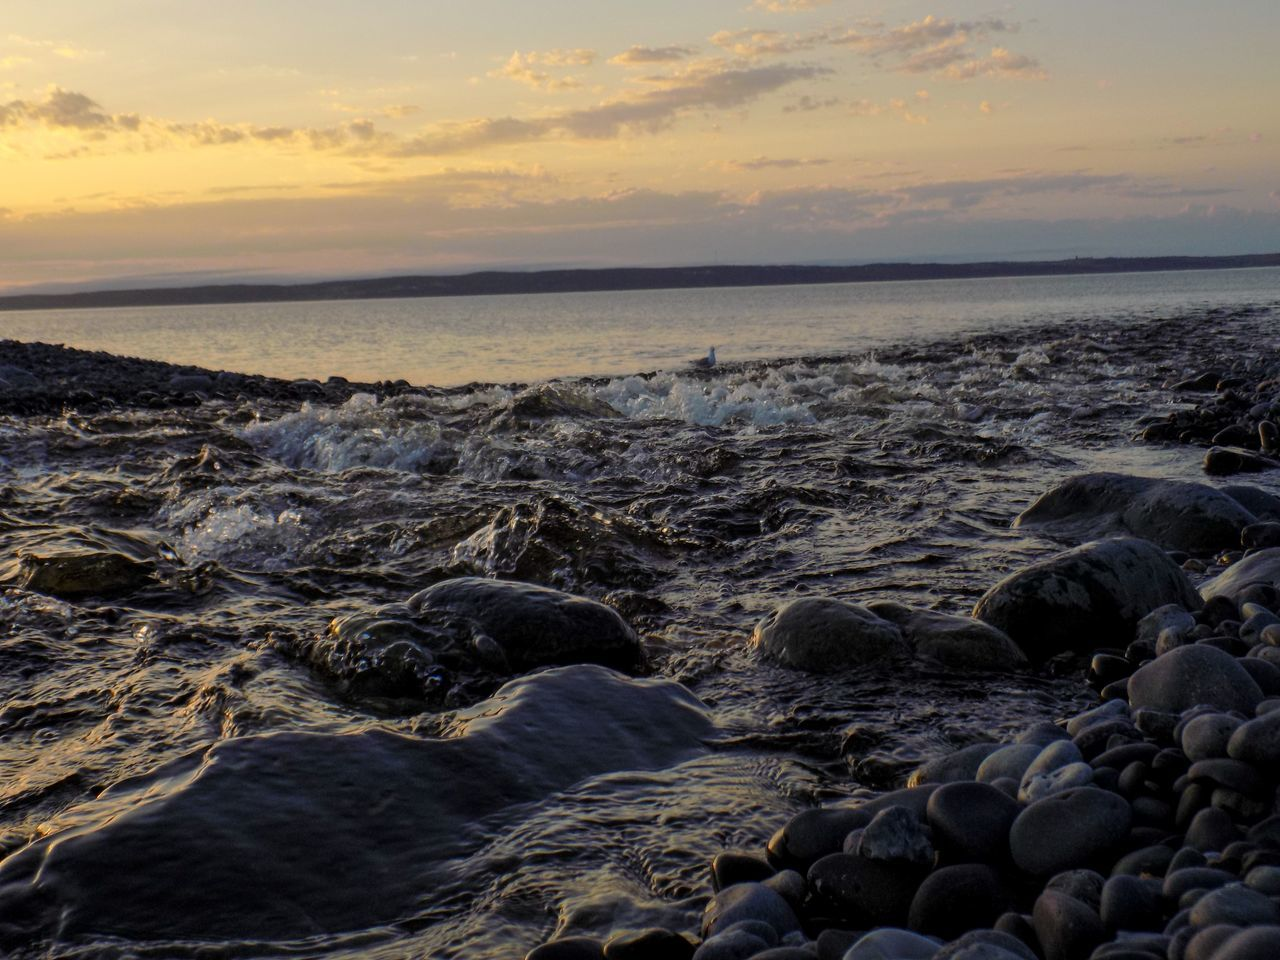 sea, beauty in nature, nature, sunset, water, beach, shore, scenics, tranquil scene, horizon over water, tranquility, no people, sky, pebble, outdoors, pebble beach, cloud - sky, wave, day